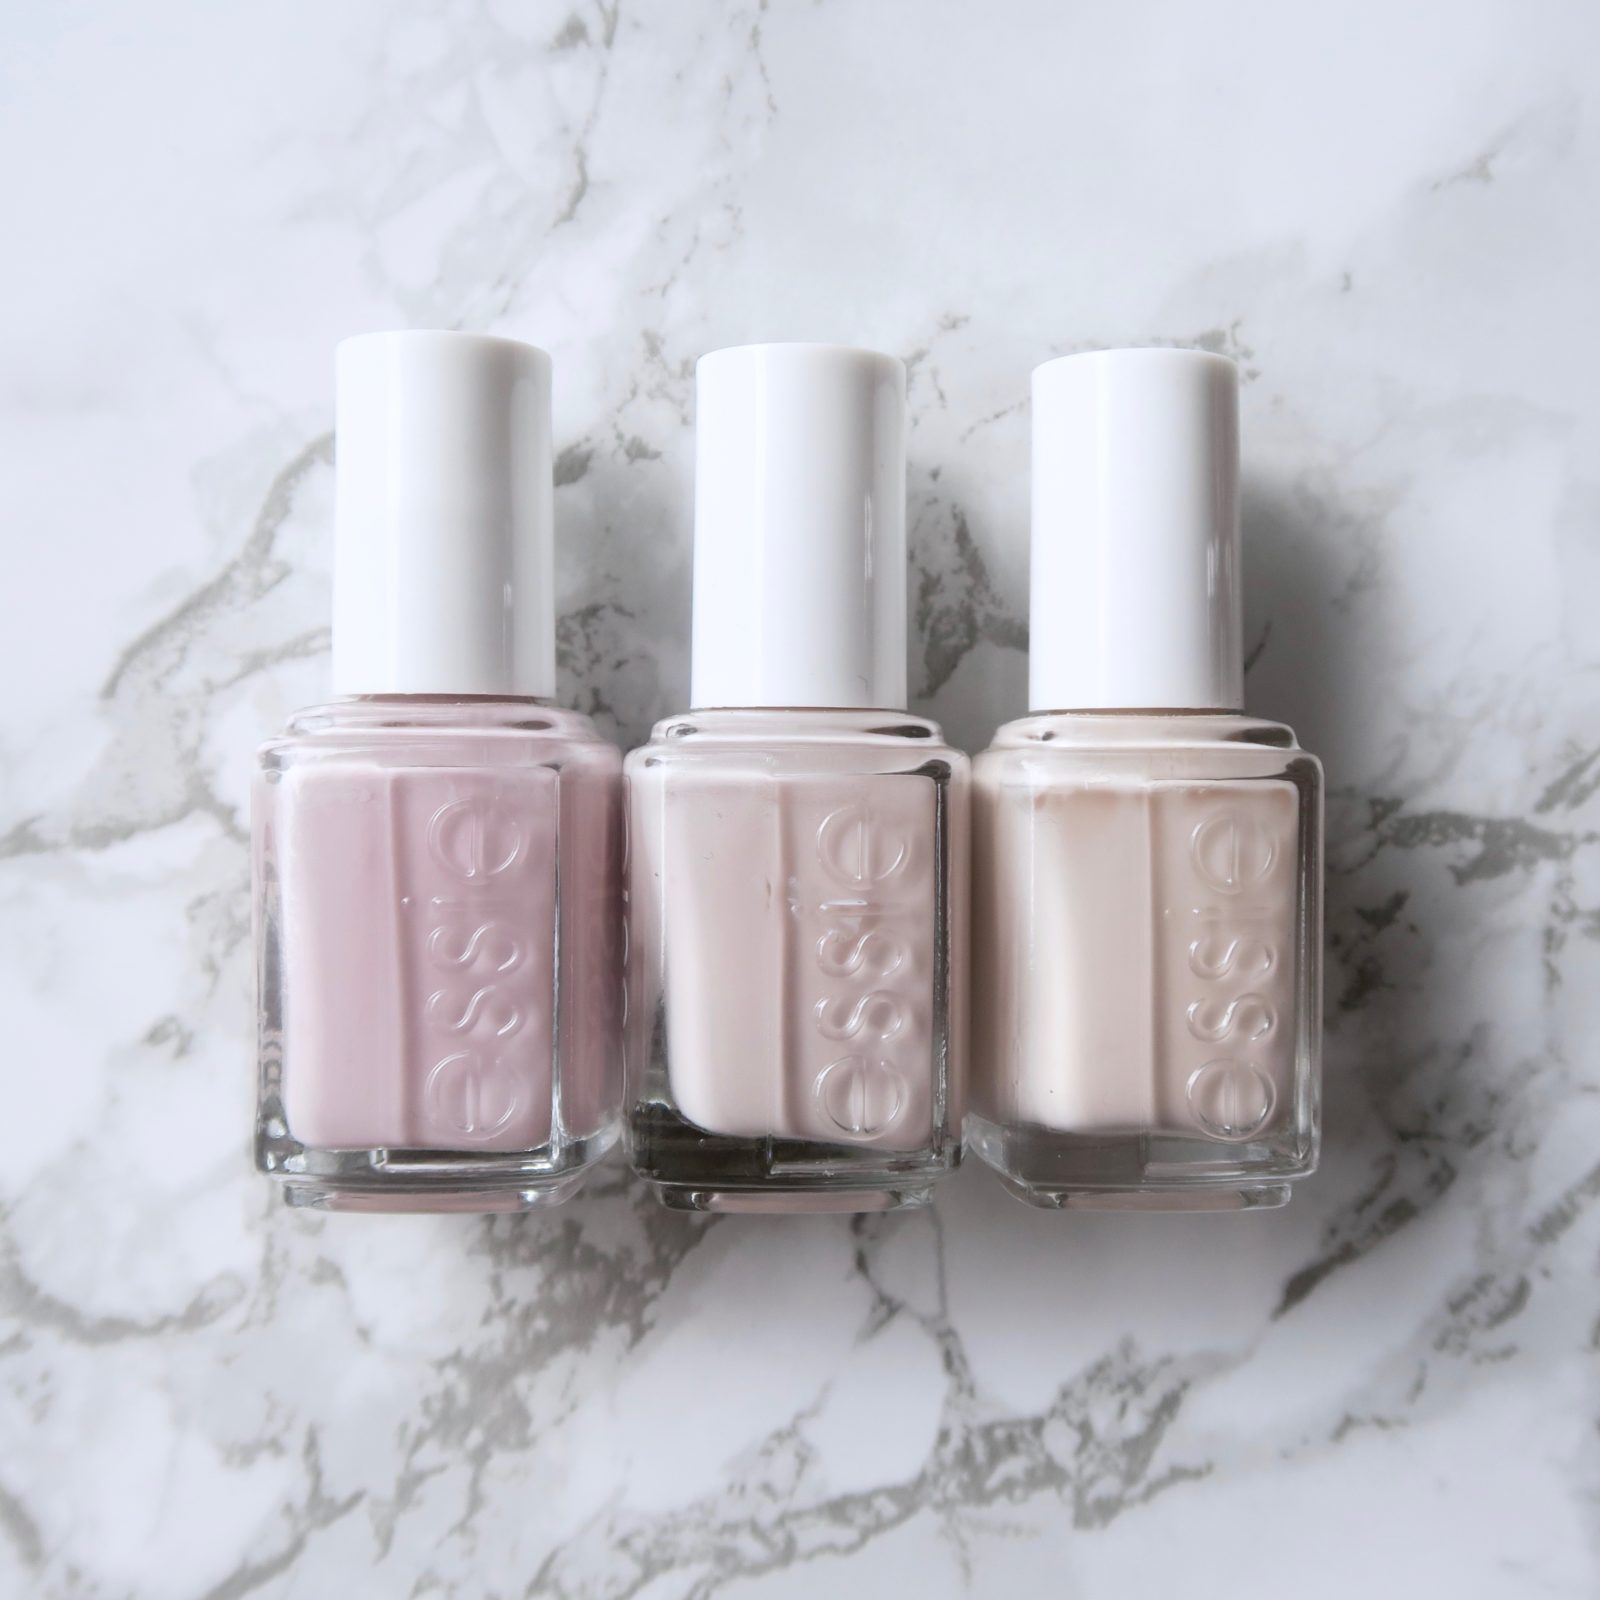 Essie Fall 2017 Collection Review & Swatches